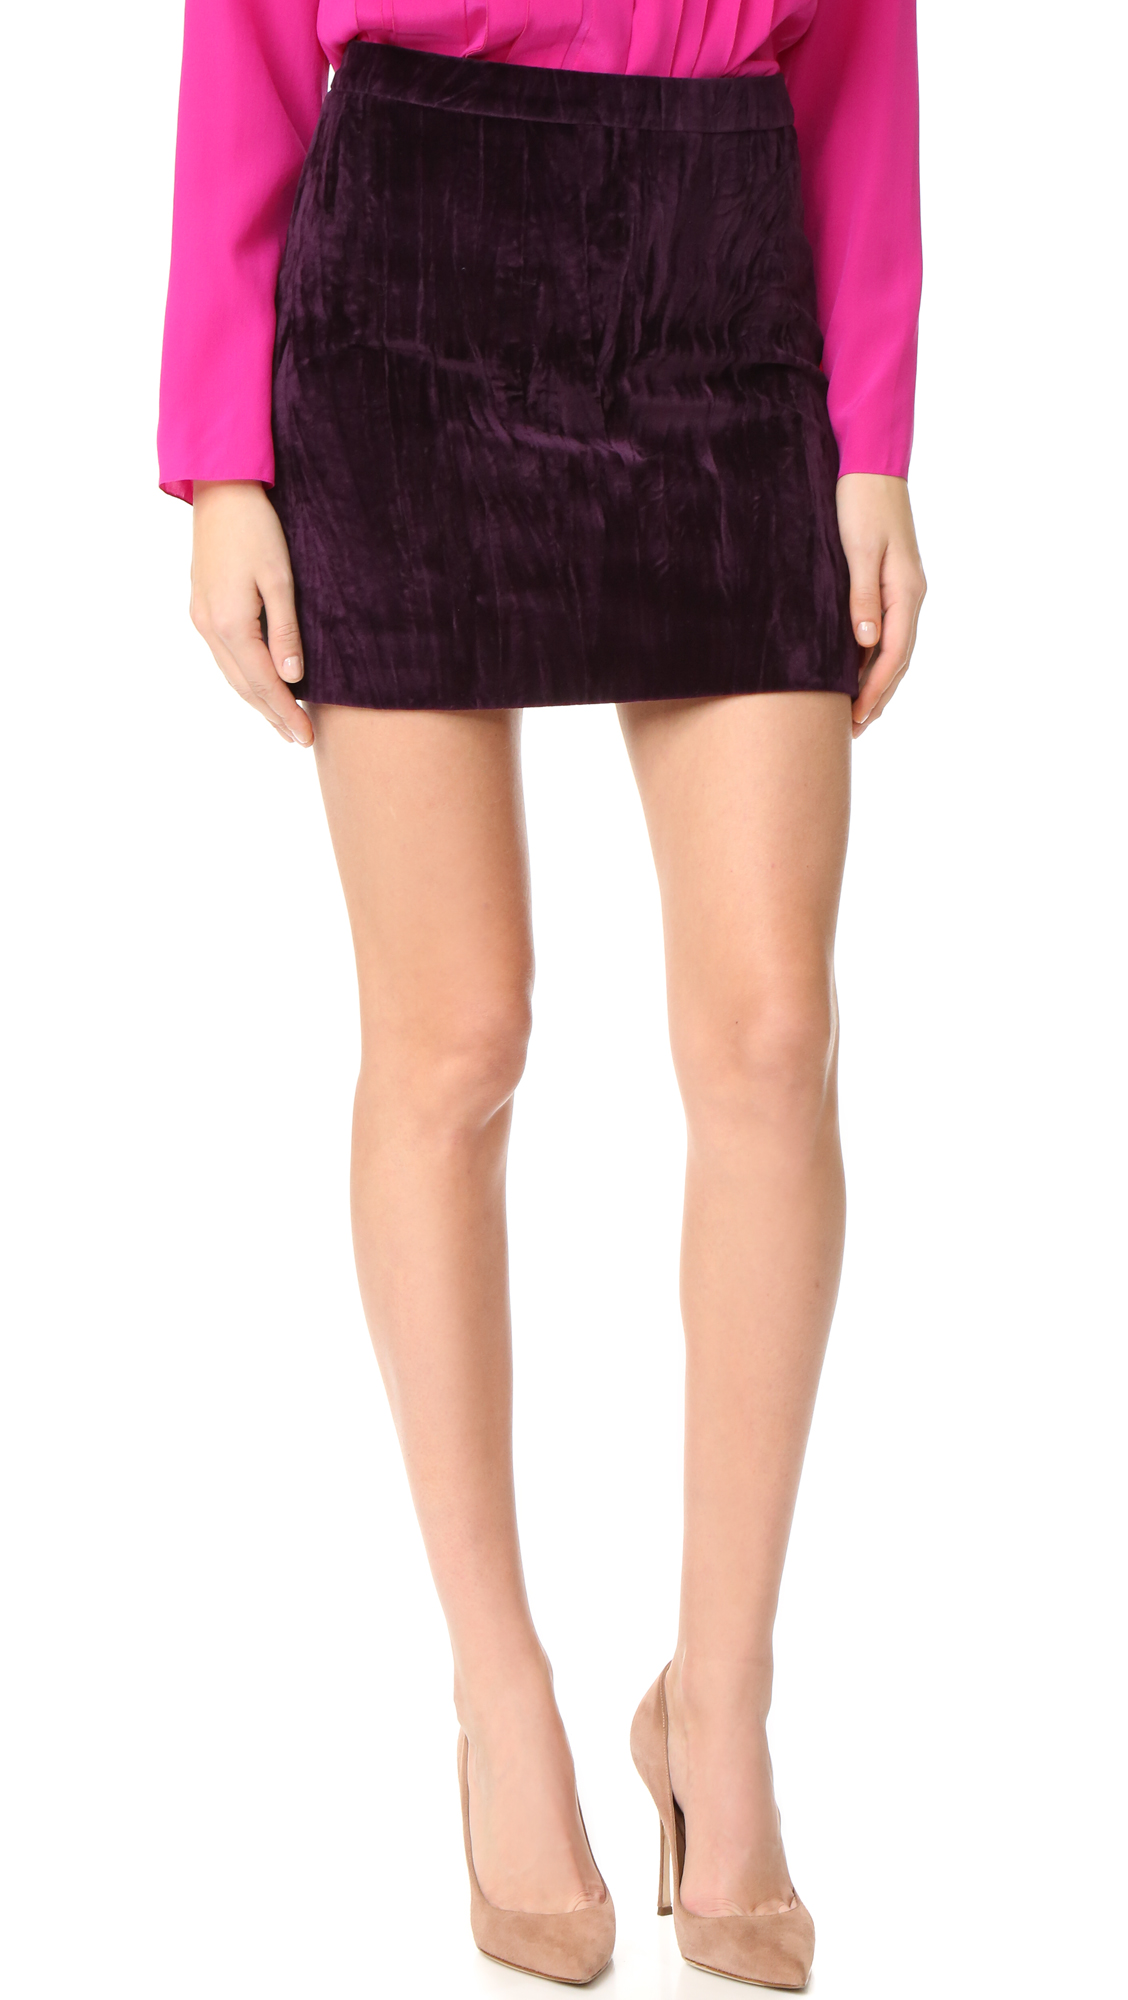 Soft velvet gives this Nina Ricci miniskirt a luxe, retro inspired look. Hidden back zip. Lined. Fabric: Velvet. Shell: 100% cotton. Lining: 71% acetate/29% silk. Dry clean. Made in France. Measurements Length: 15.25in / 39cm, from shoulder Measurements from